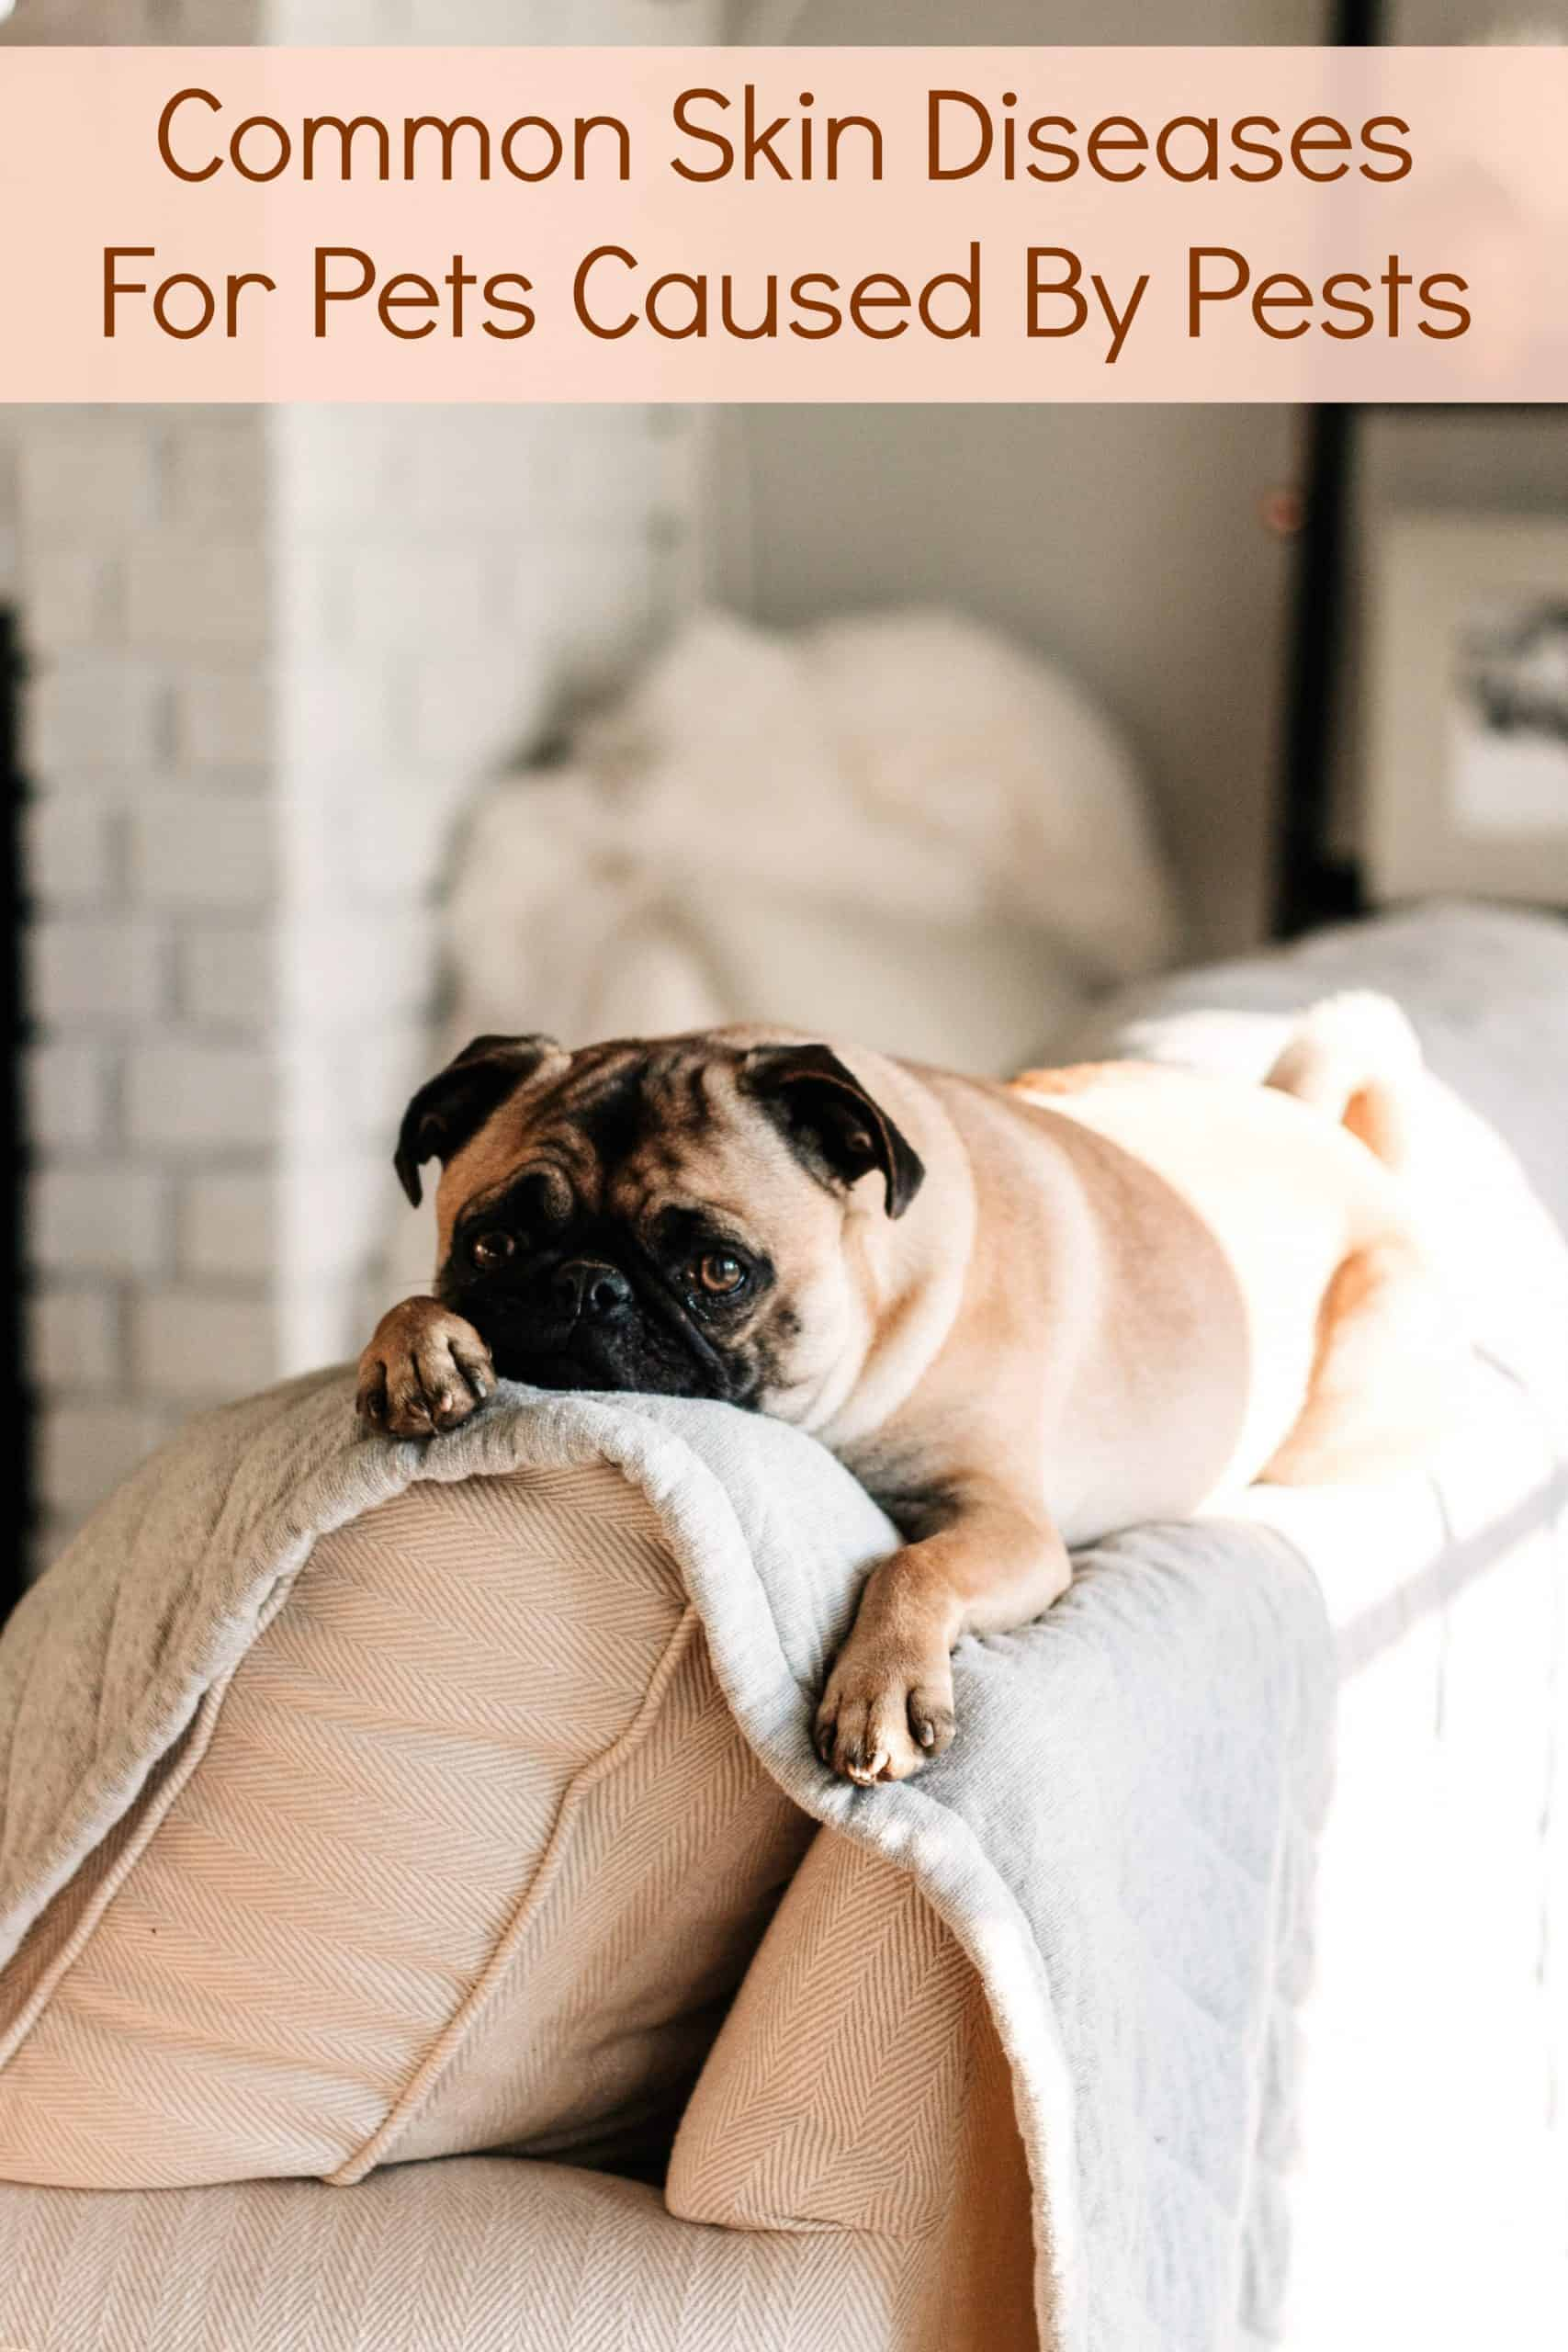 Common Skin Diseases For Pets Caused By Pests